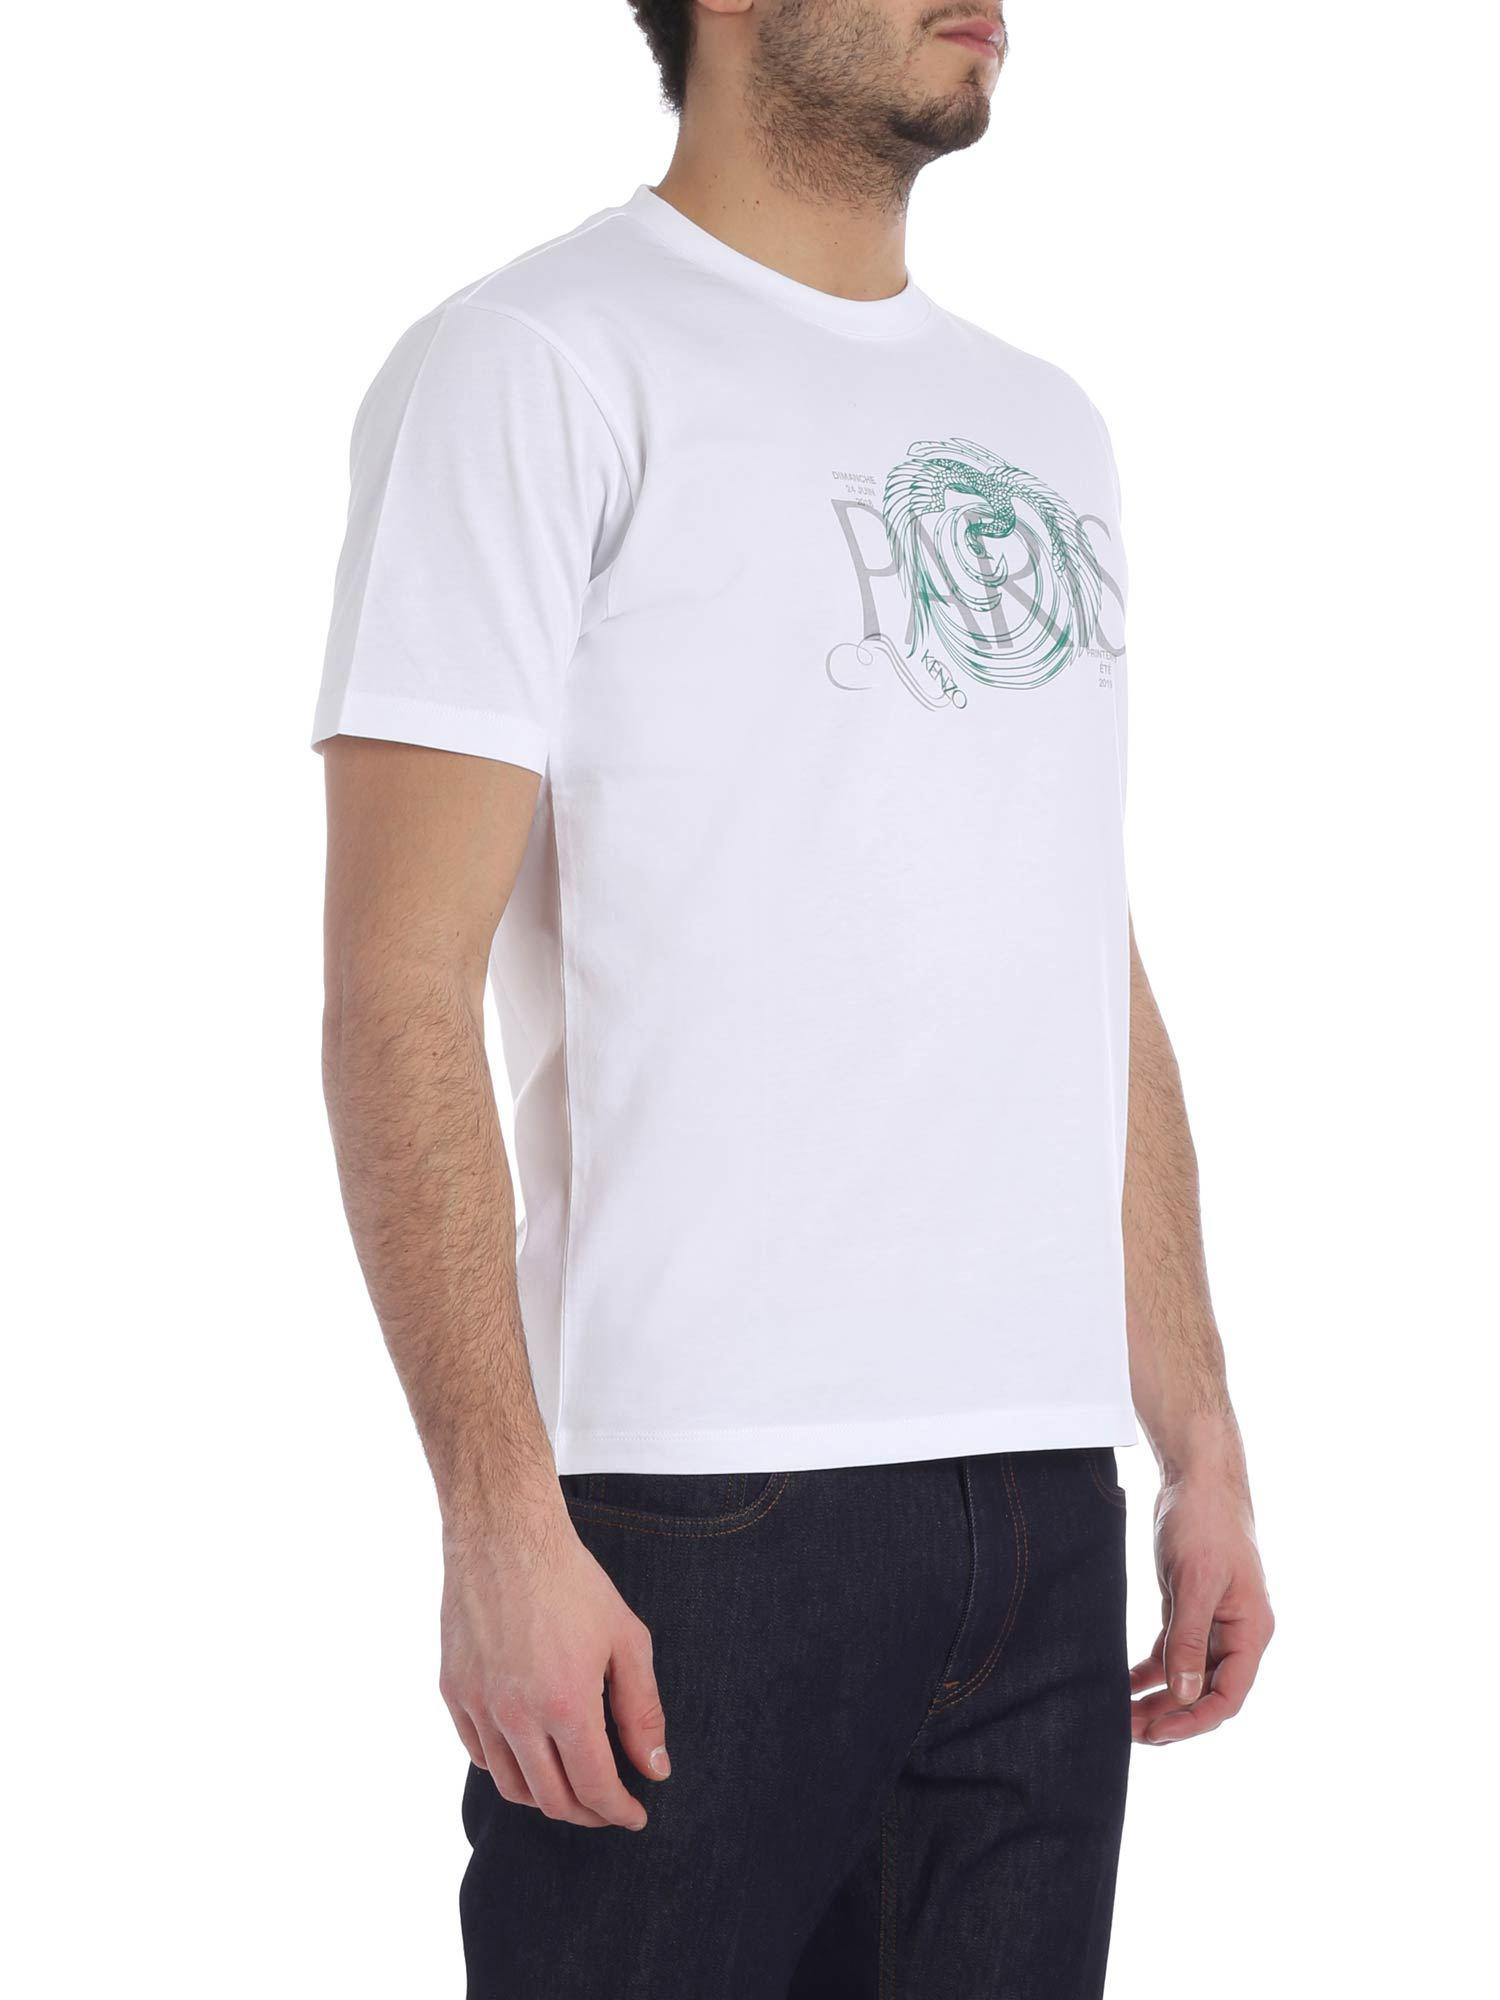 6770e9a66 Lyst - KENZO White And Green Paris T-shirt in White for Men